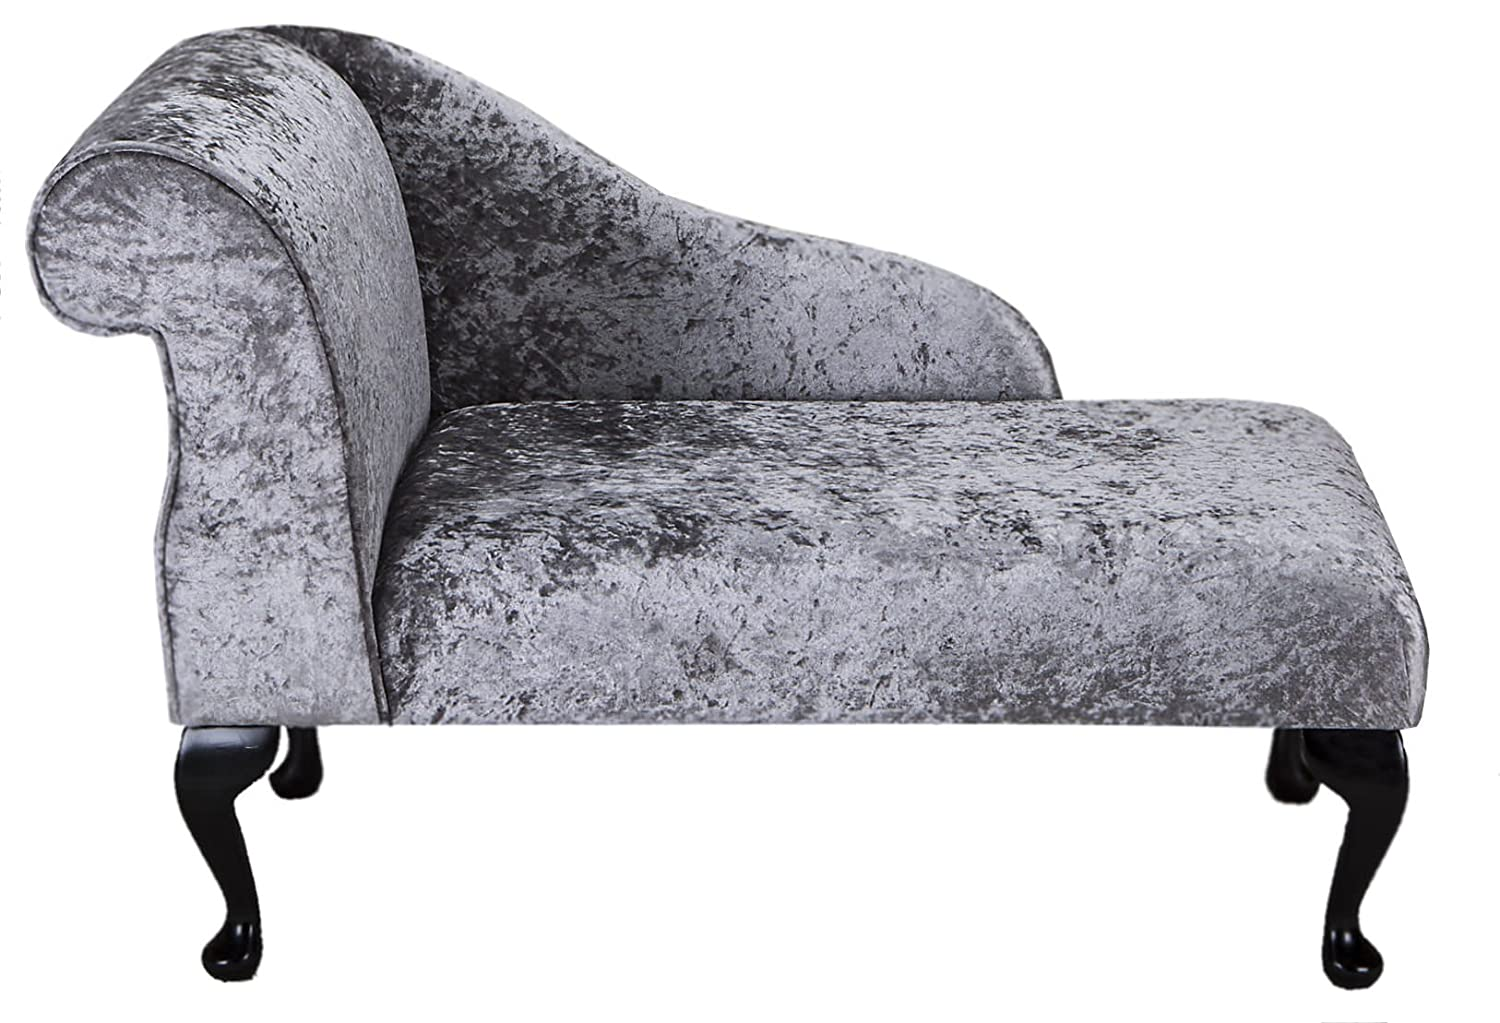 "41"" Small Classic Chaise Longue - Chair Seat - Bling Pewter Fabric - Left Facing With Queen Anne Legs Beaumont"